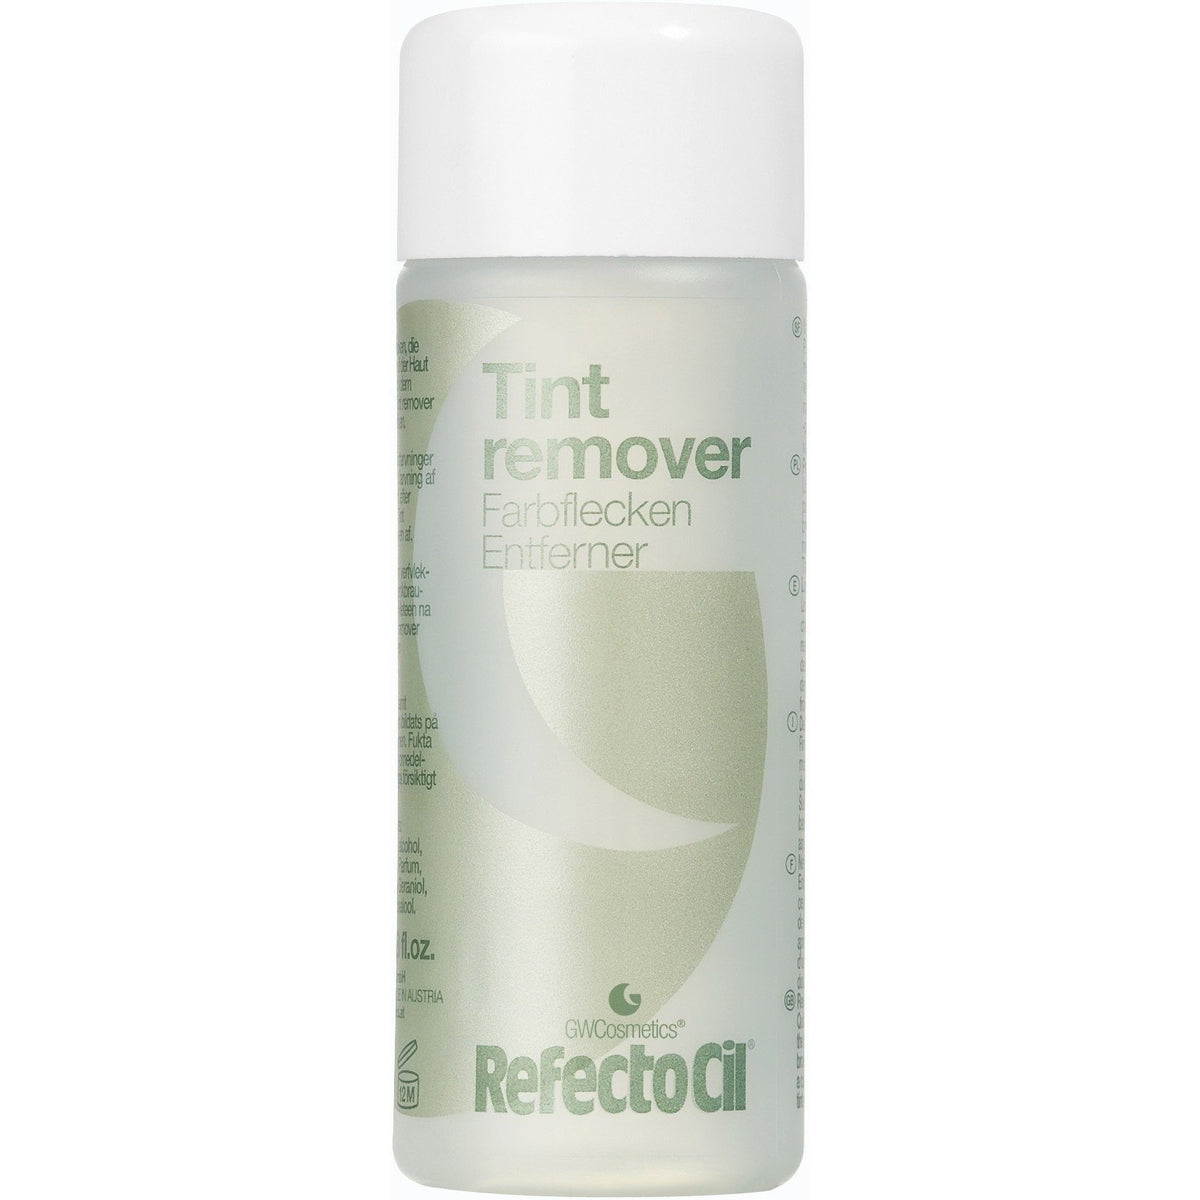 Refectocil Tint Remover - 100ml - Breizh Esthetic & Salon Supply